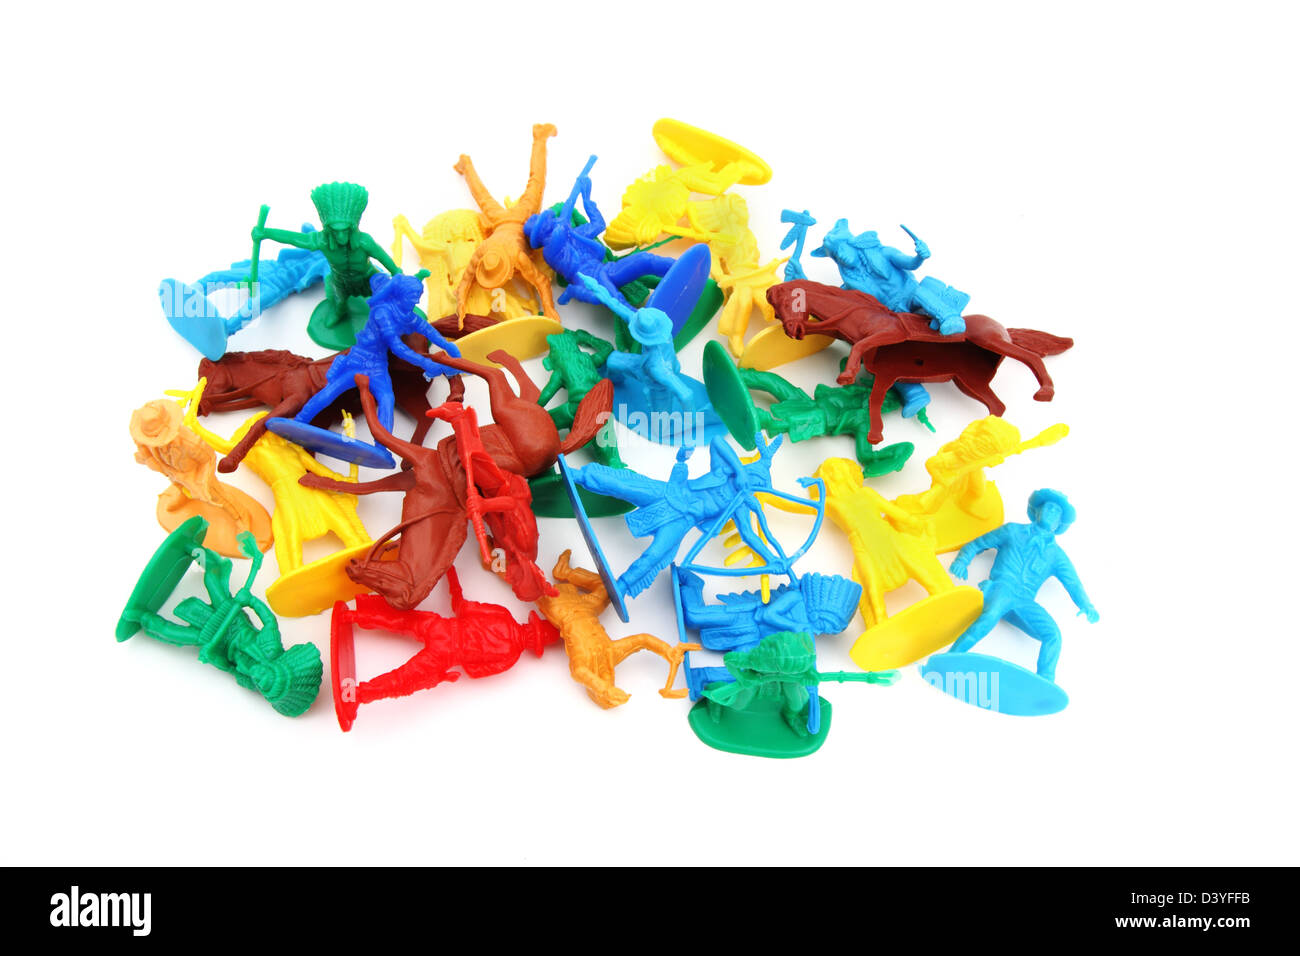 An assortment of toy cowboys and Indians in a loose pile on white background. - Stock Image